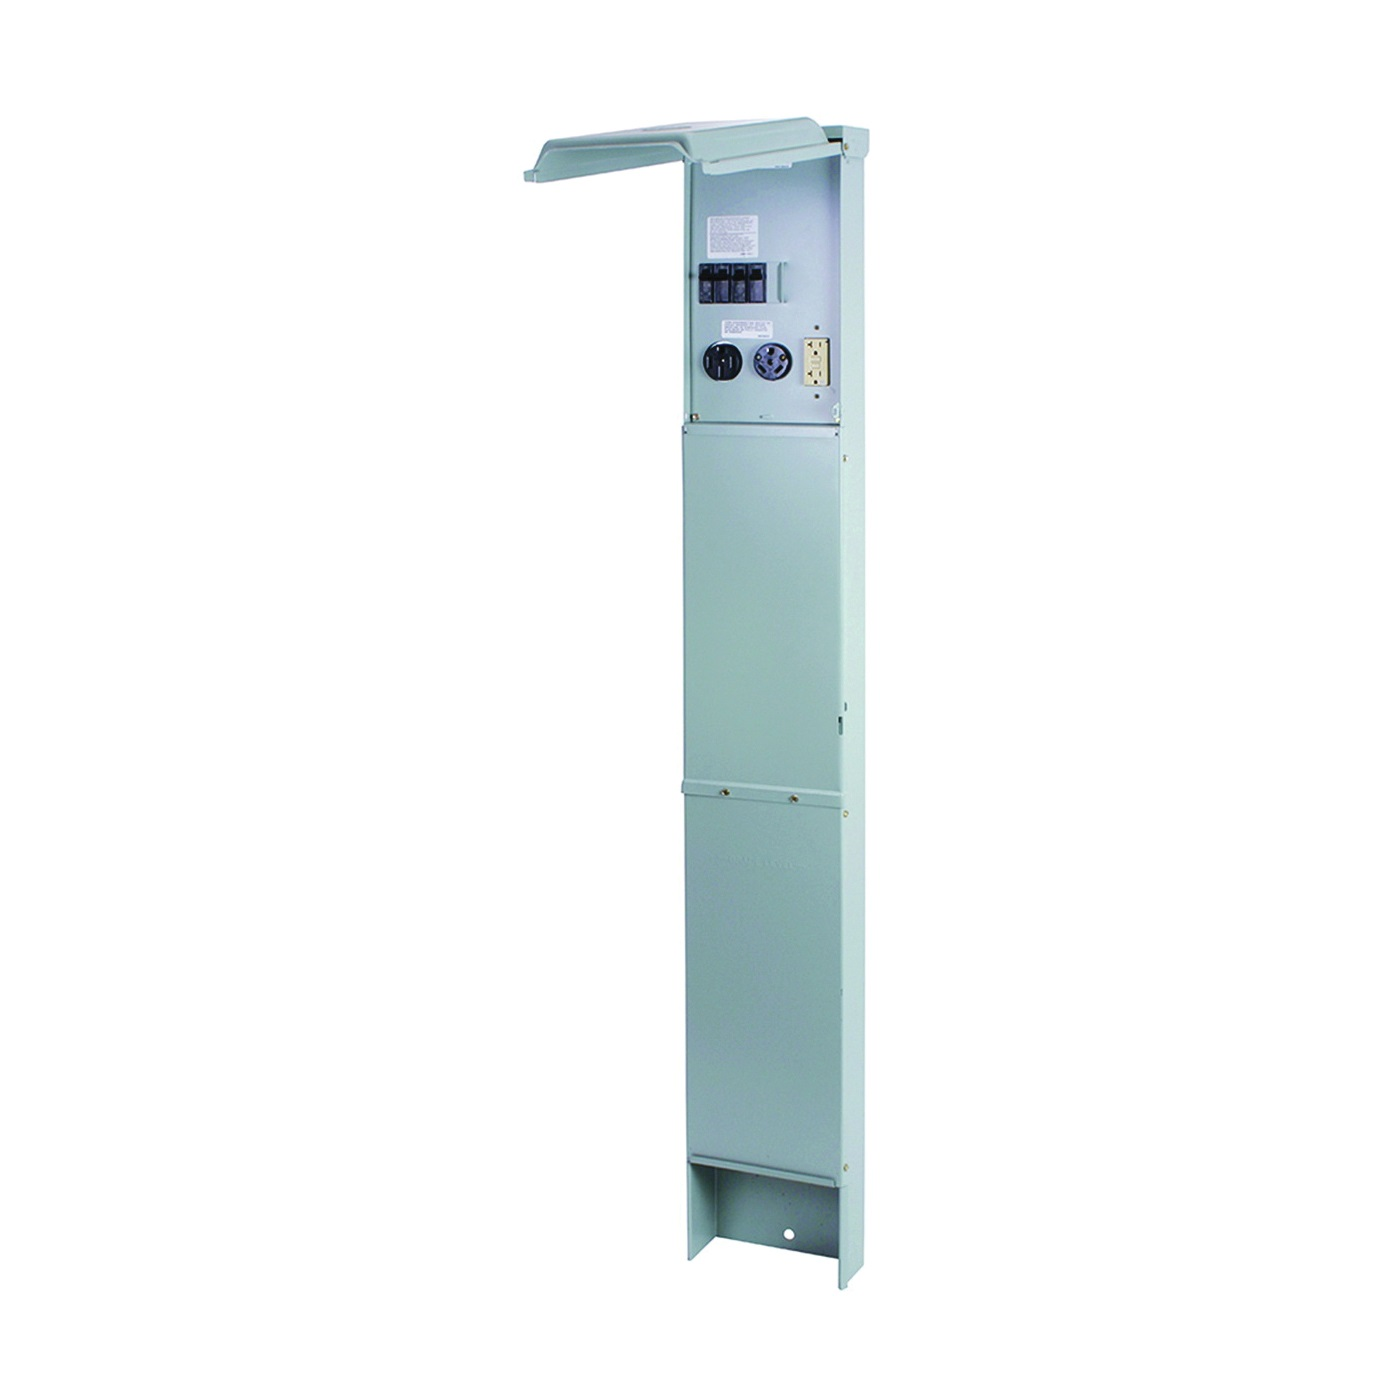 Picture of GE Industrial Solutions GE1LU532ES Unmetered Earth Burial Pedestal, 100 A, 120, 240 V, Plug-In Mounting